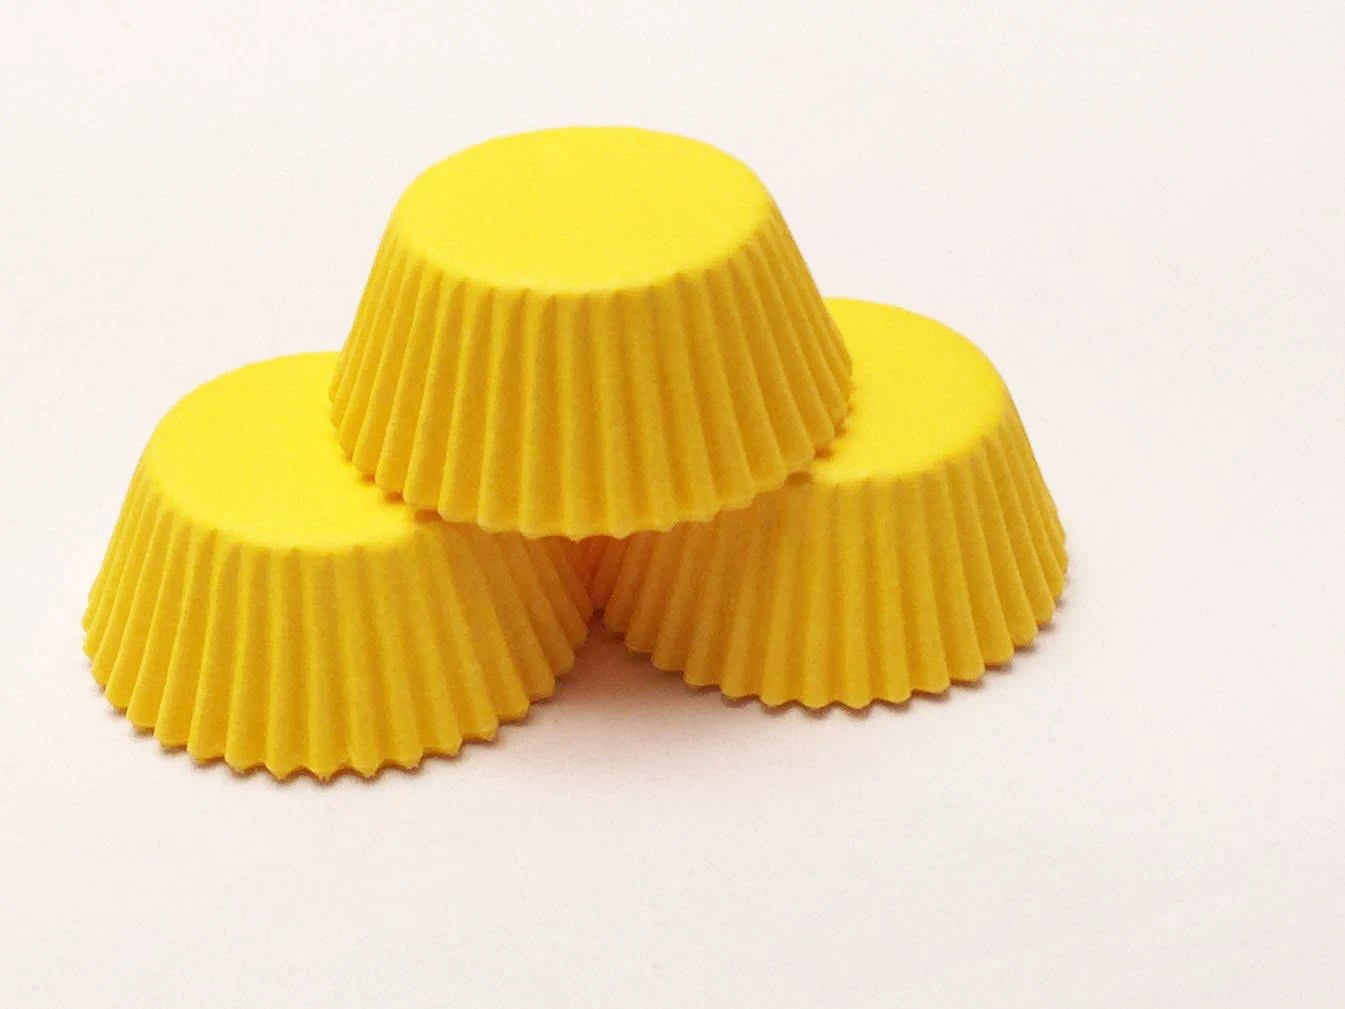 48 Bright Yellow Mini Size Cupcake Liners Baking Cups